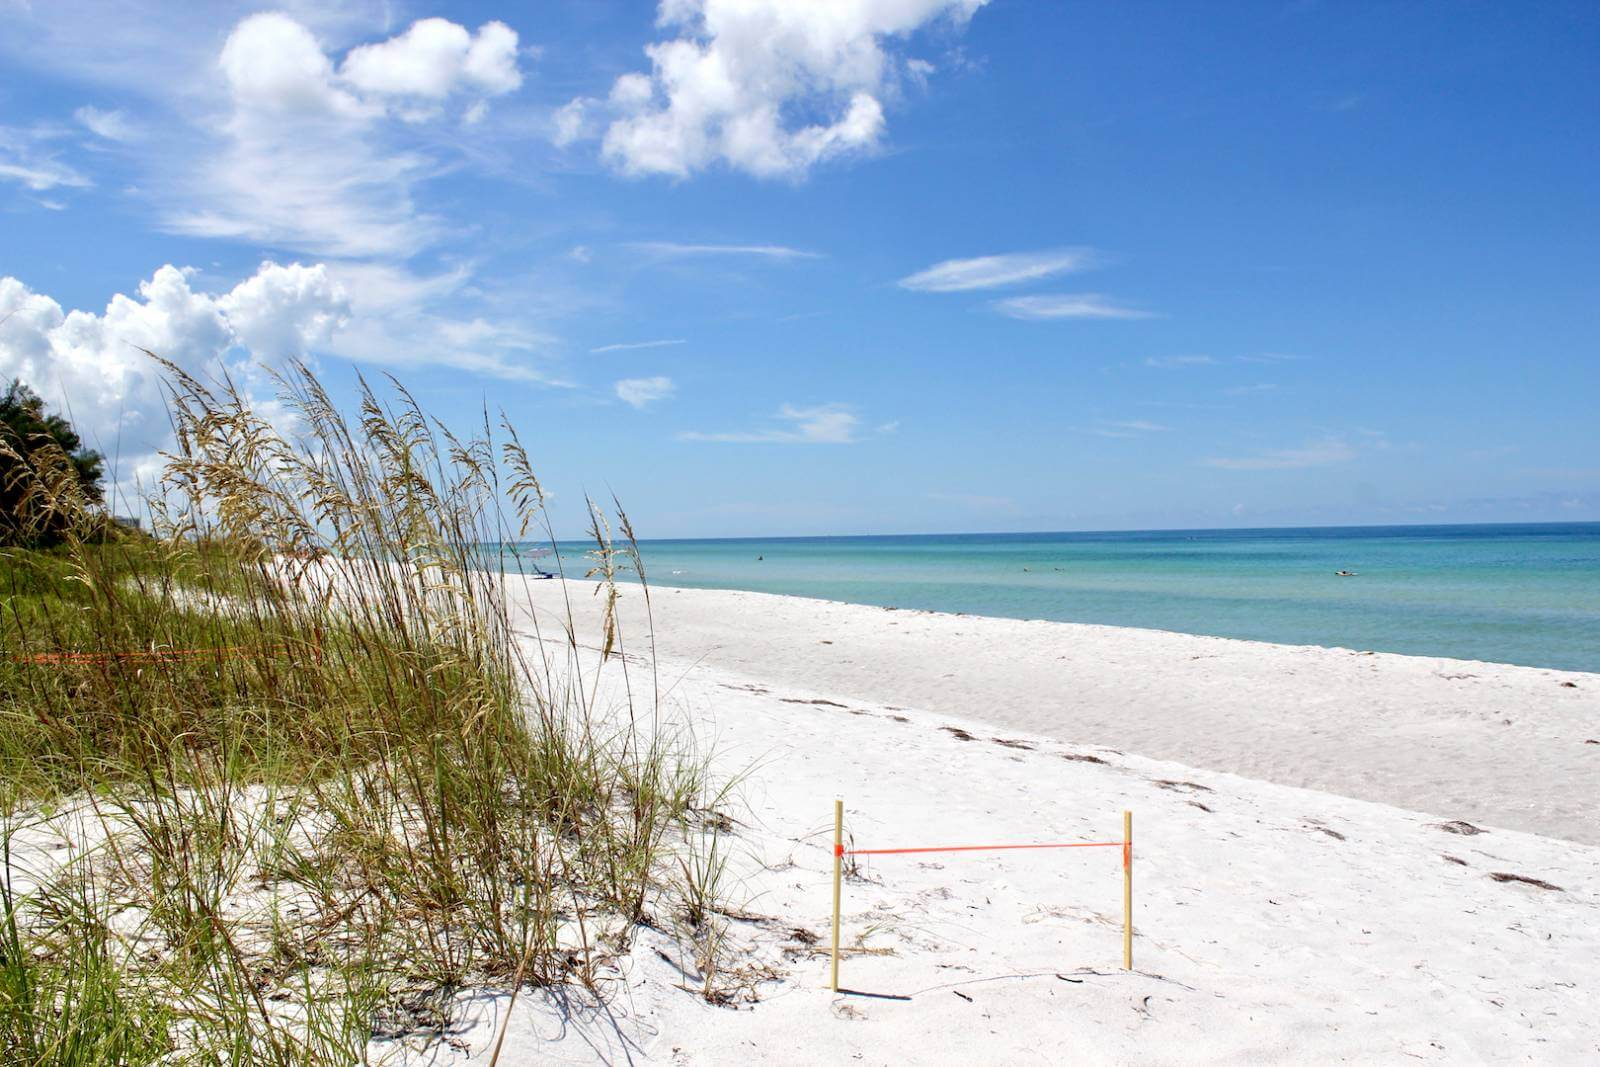 Longboat Key is Sarasota's longest and most northerly barrier island with 12 miles of sandy coastline. It is a popular island for nesting turtles to come ashore and lay their eggs. #Sarasota #Florida #vacation #beach #LongboatKey